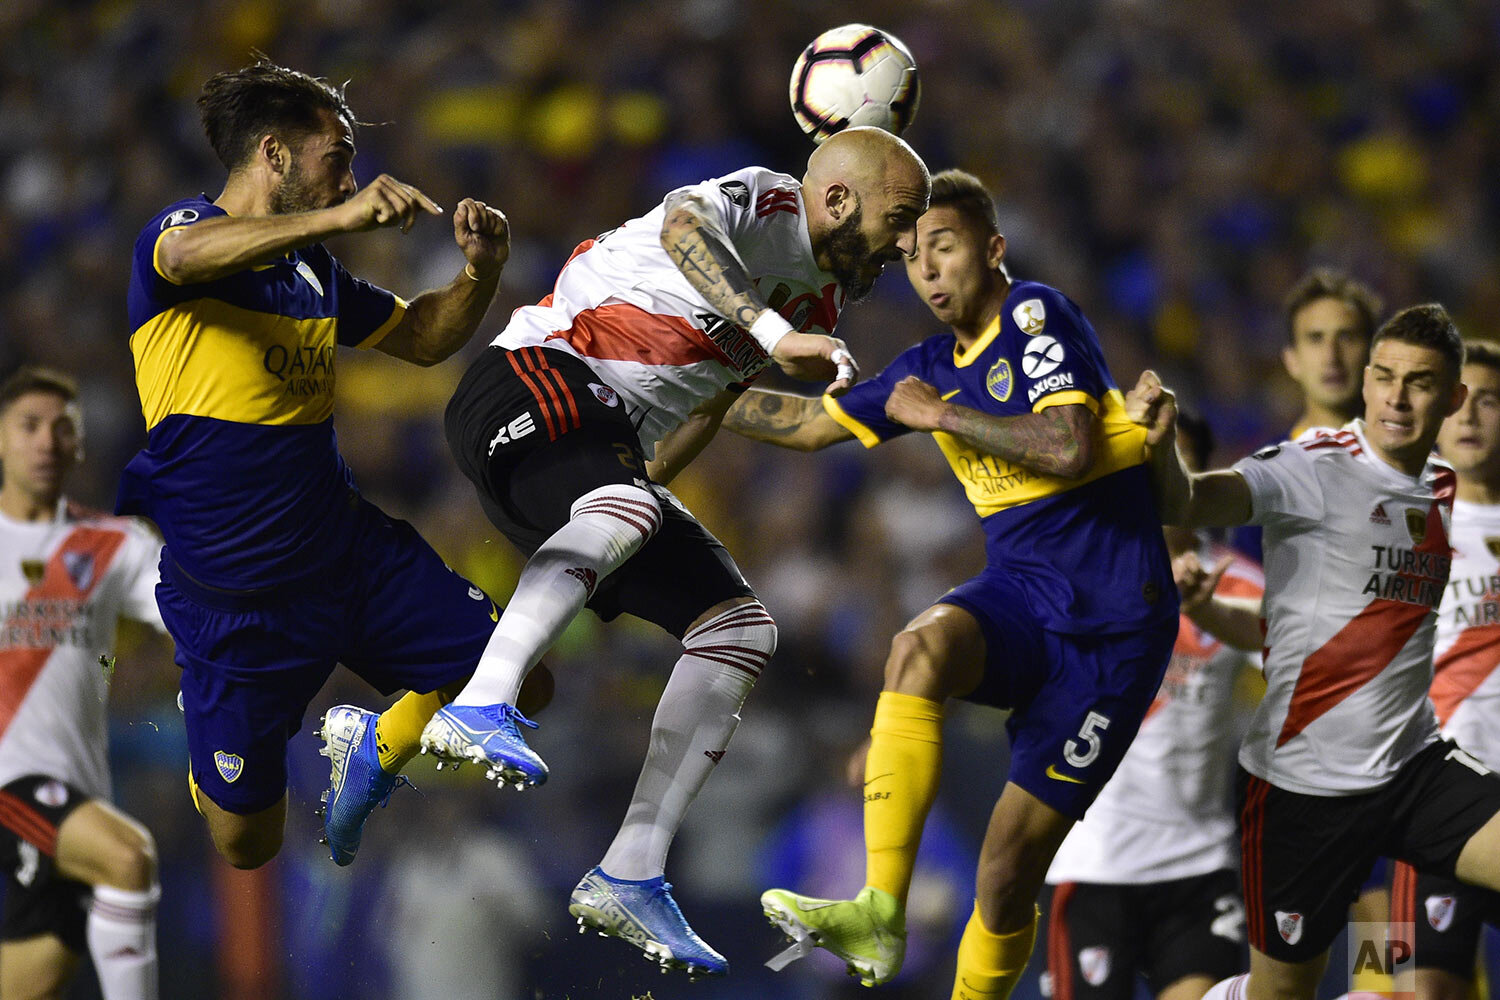 Javier Pinola of River Plate heads the ball during a Copa Libertadores semifinal second leg soccer match against Boca Juniors at La Bombonera stadium in Buenos Aires, Argentina, Tuesday, Oct. 22, 2019. (AP Photo/Gustavo Garello)